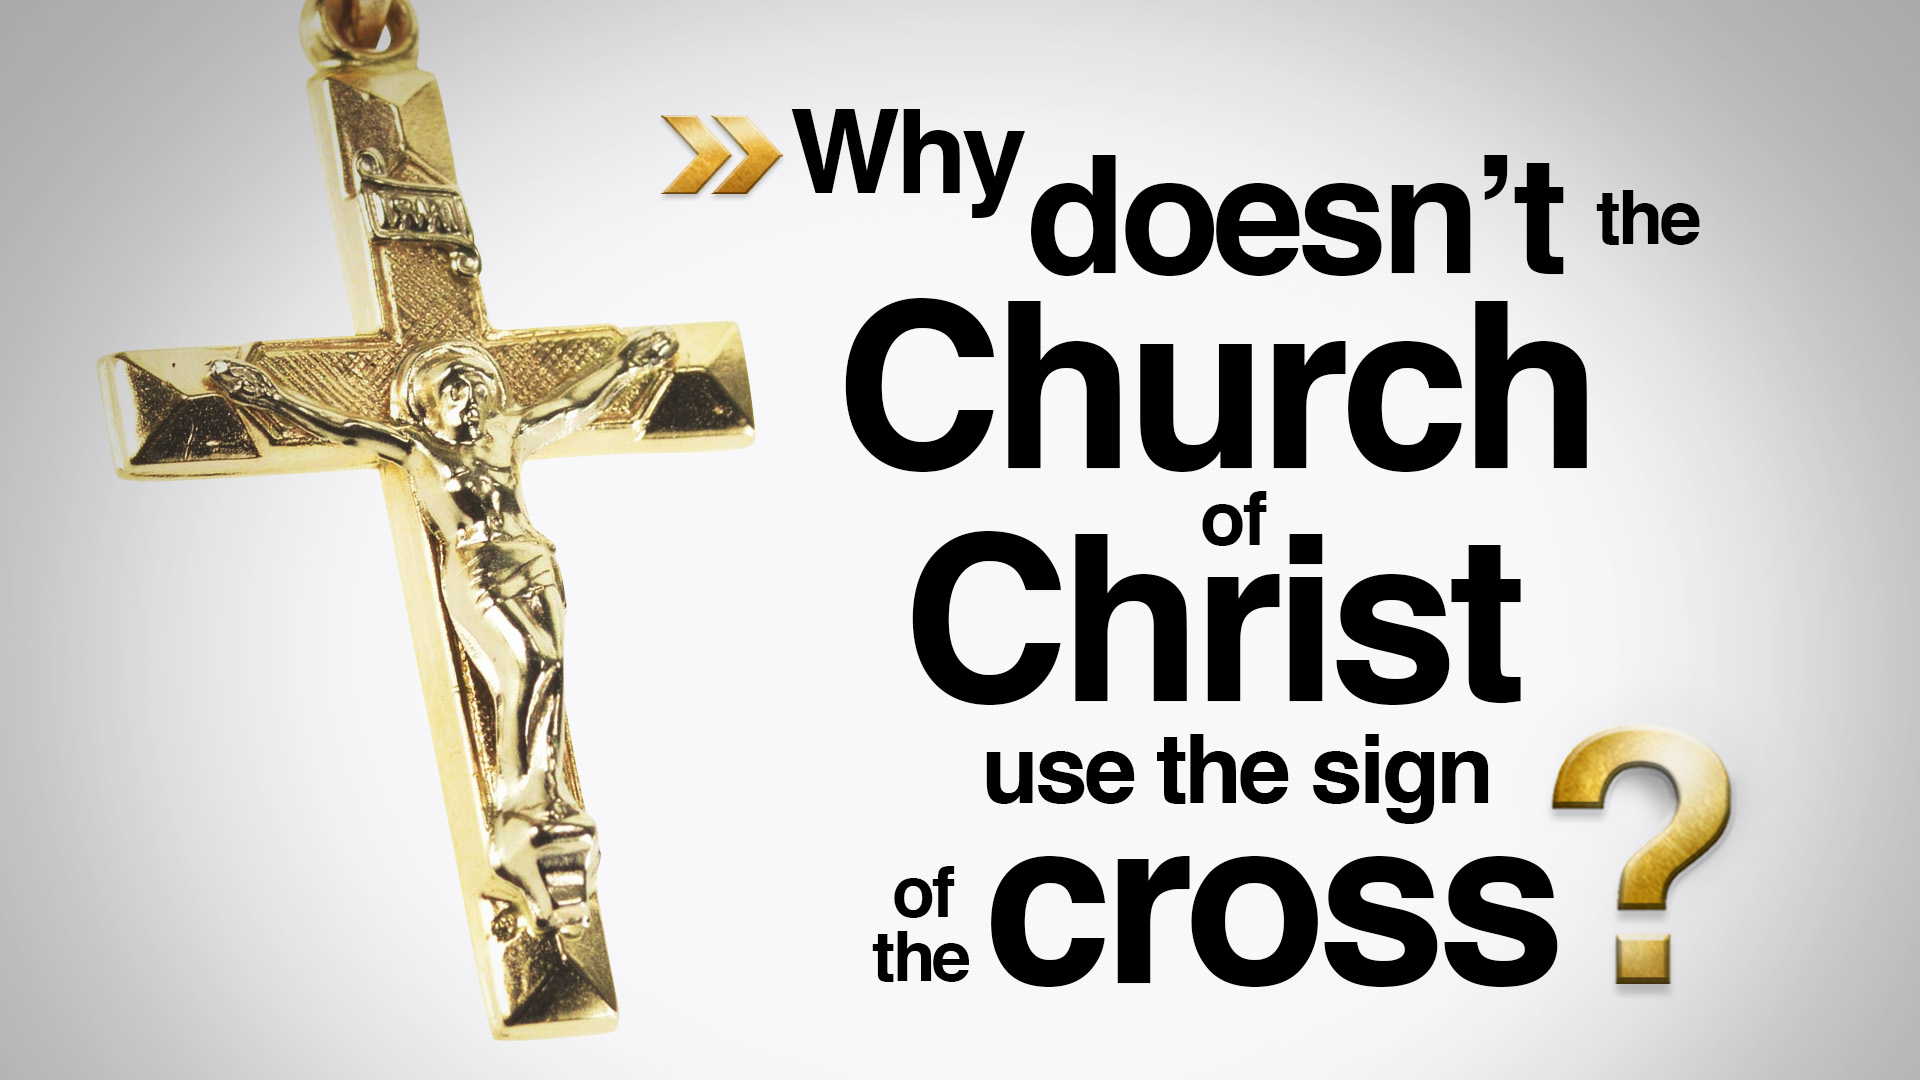 Why Doesn't the Church of Christ Use the Sign of the Cross?